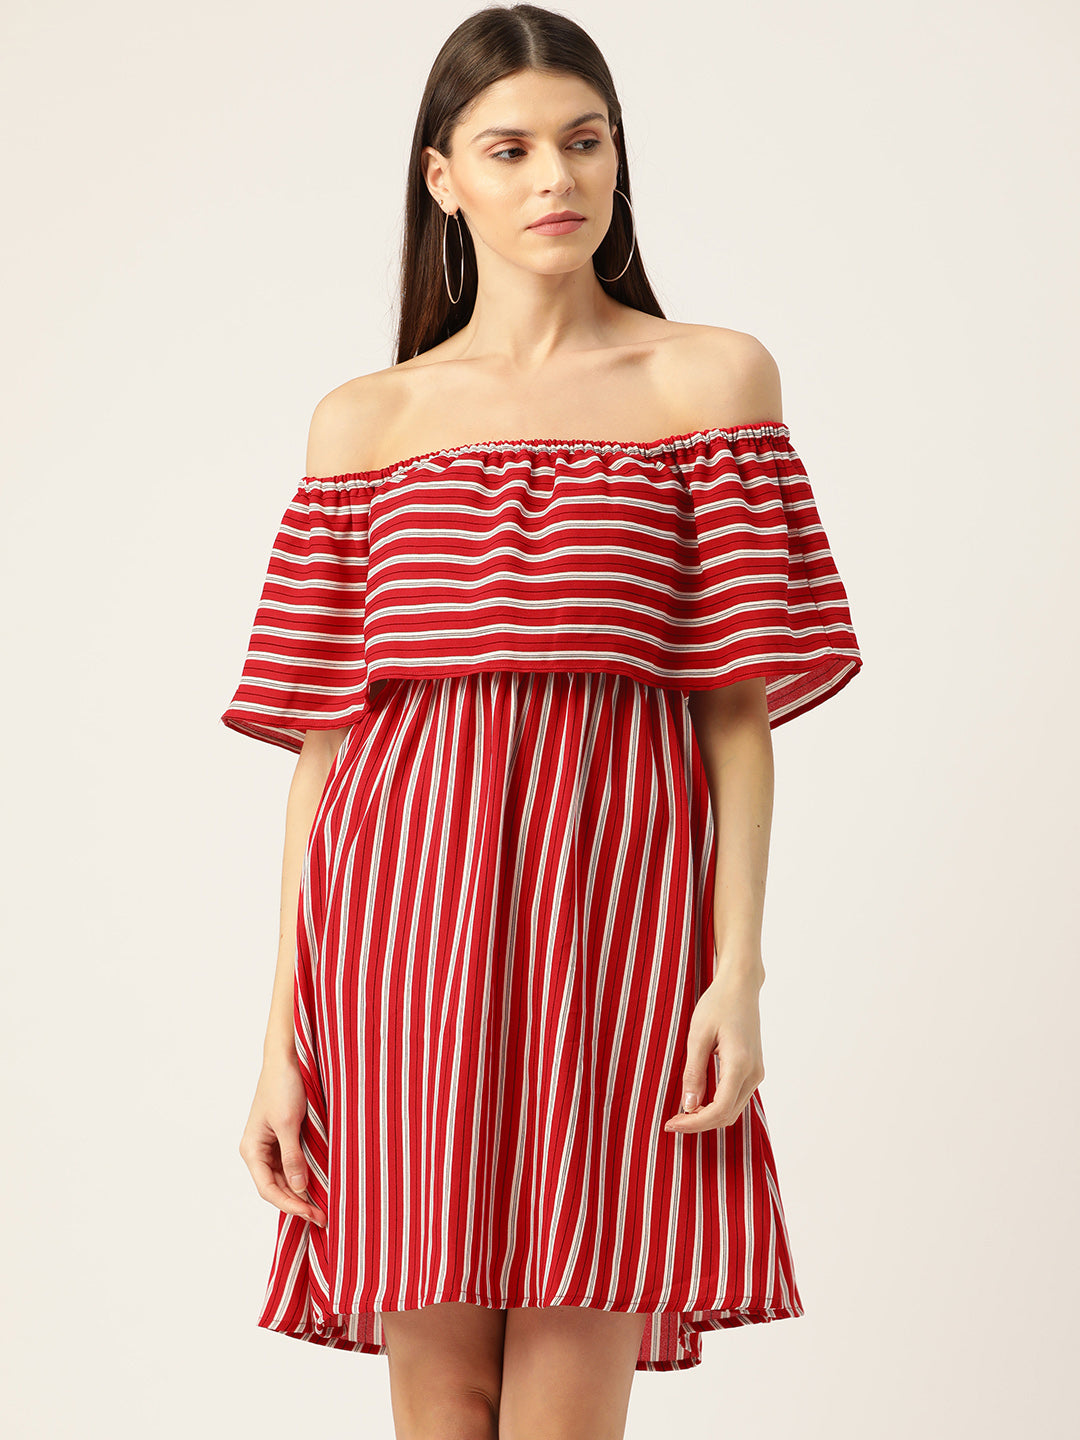 Women Red & White Striped Off-Shoulder A-Line Dress